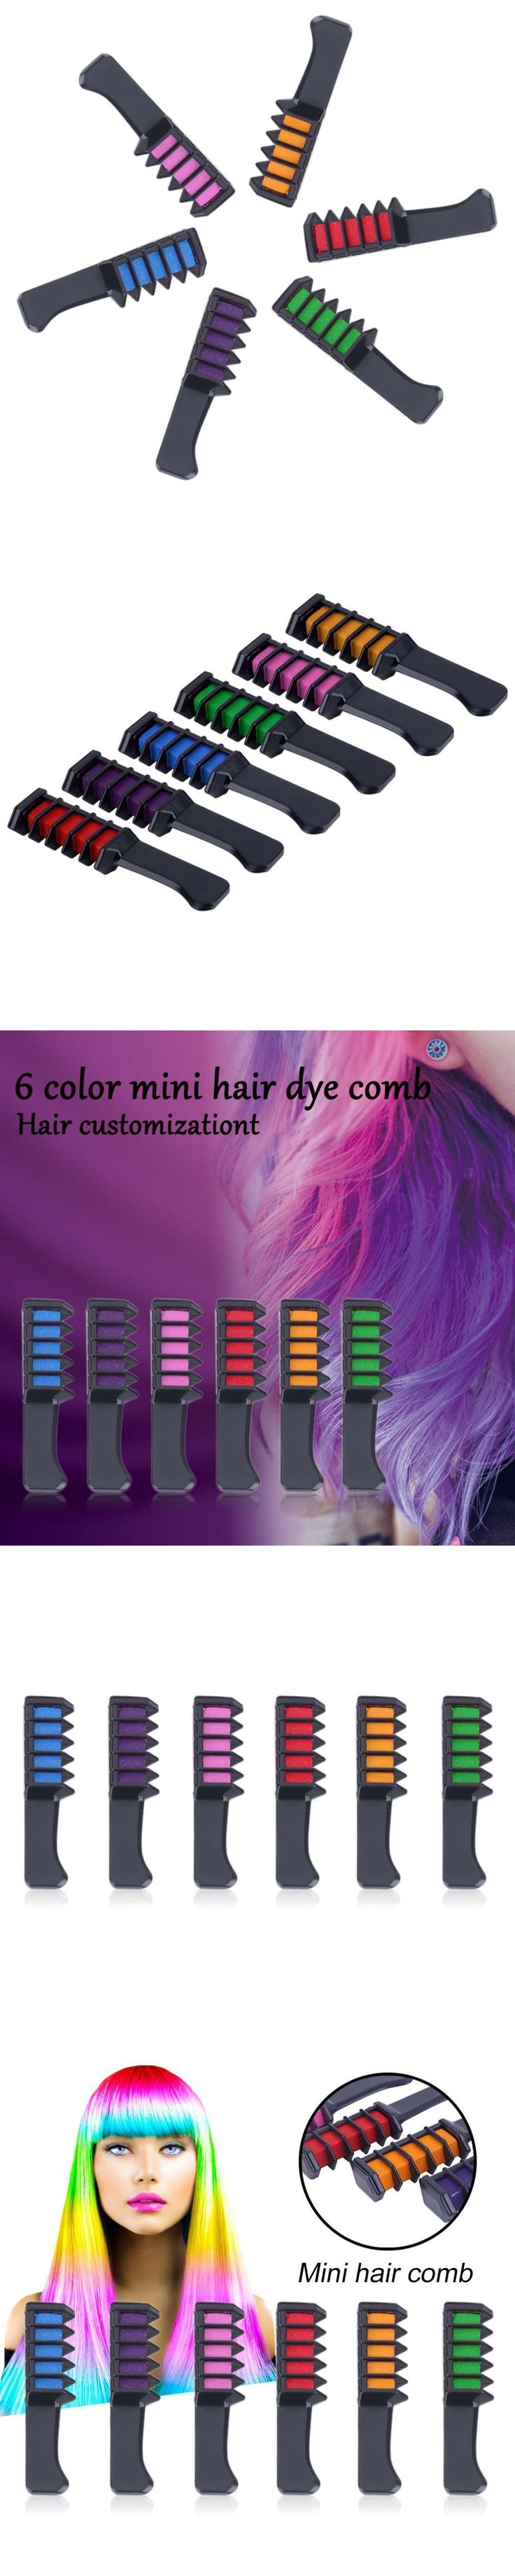 2Pcs  Wholesale  Multicolor Hair Mascara 2017 New Semi Permanent Hair Color Chalk With Comb Temporary Blue Hair Dye